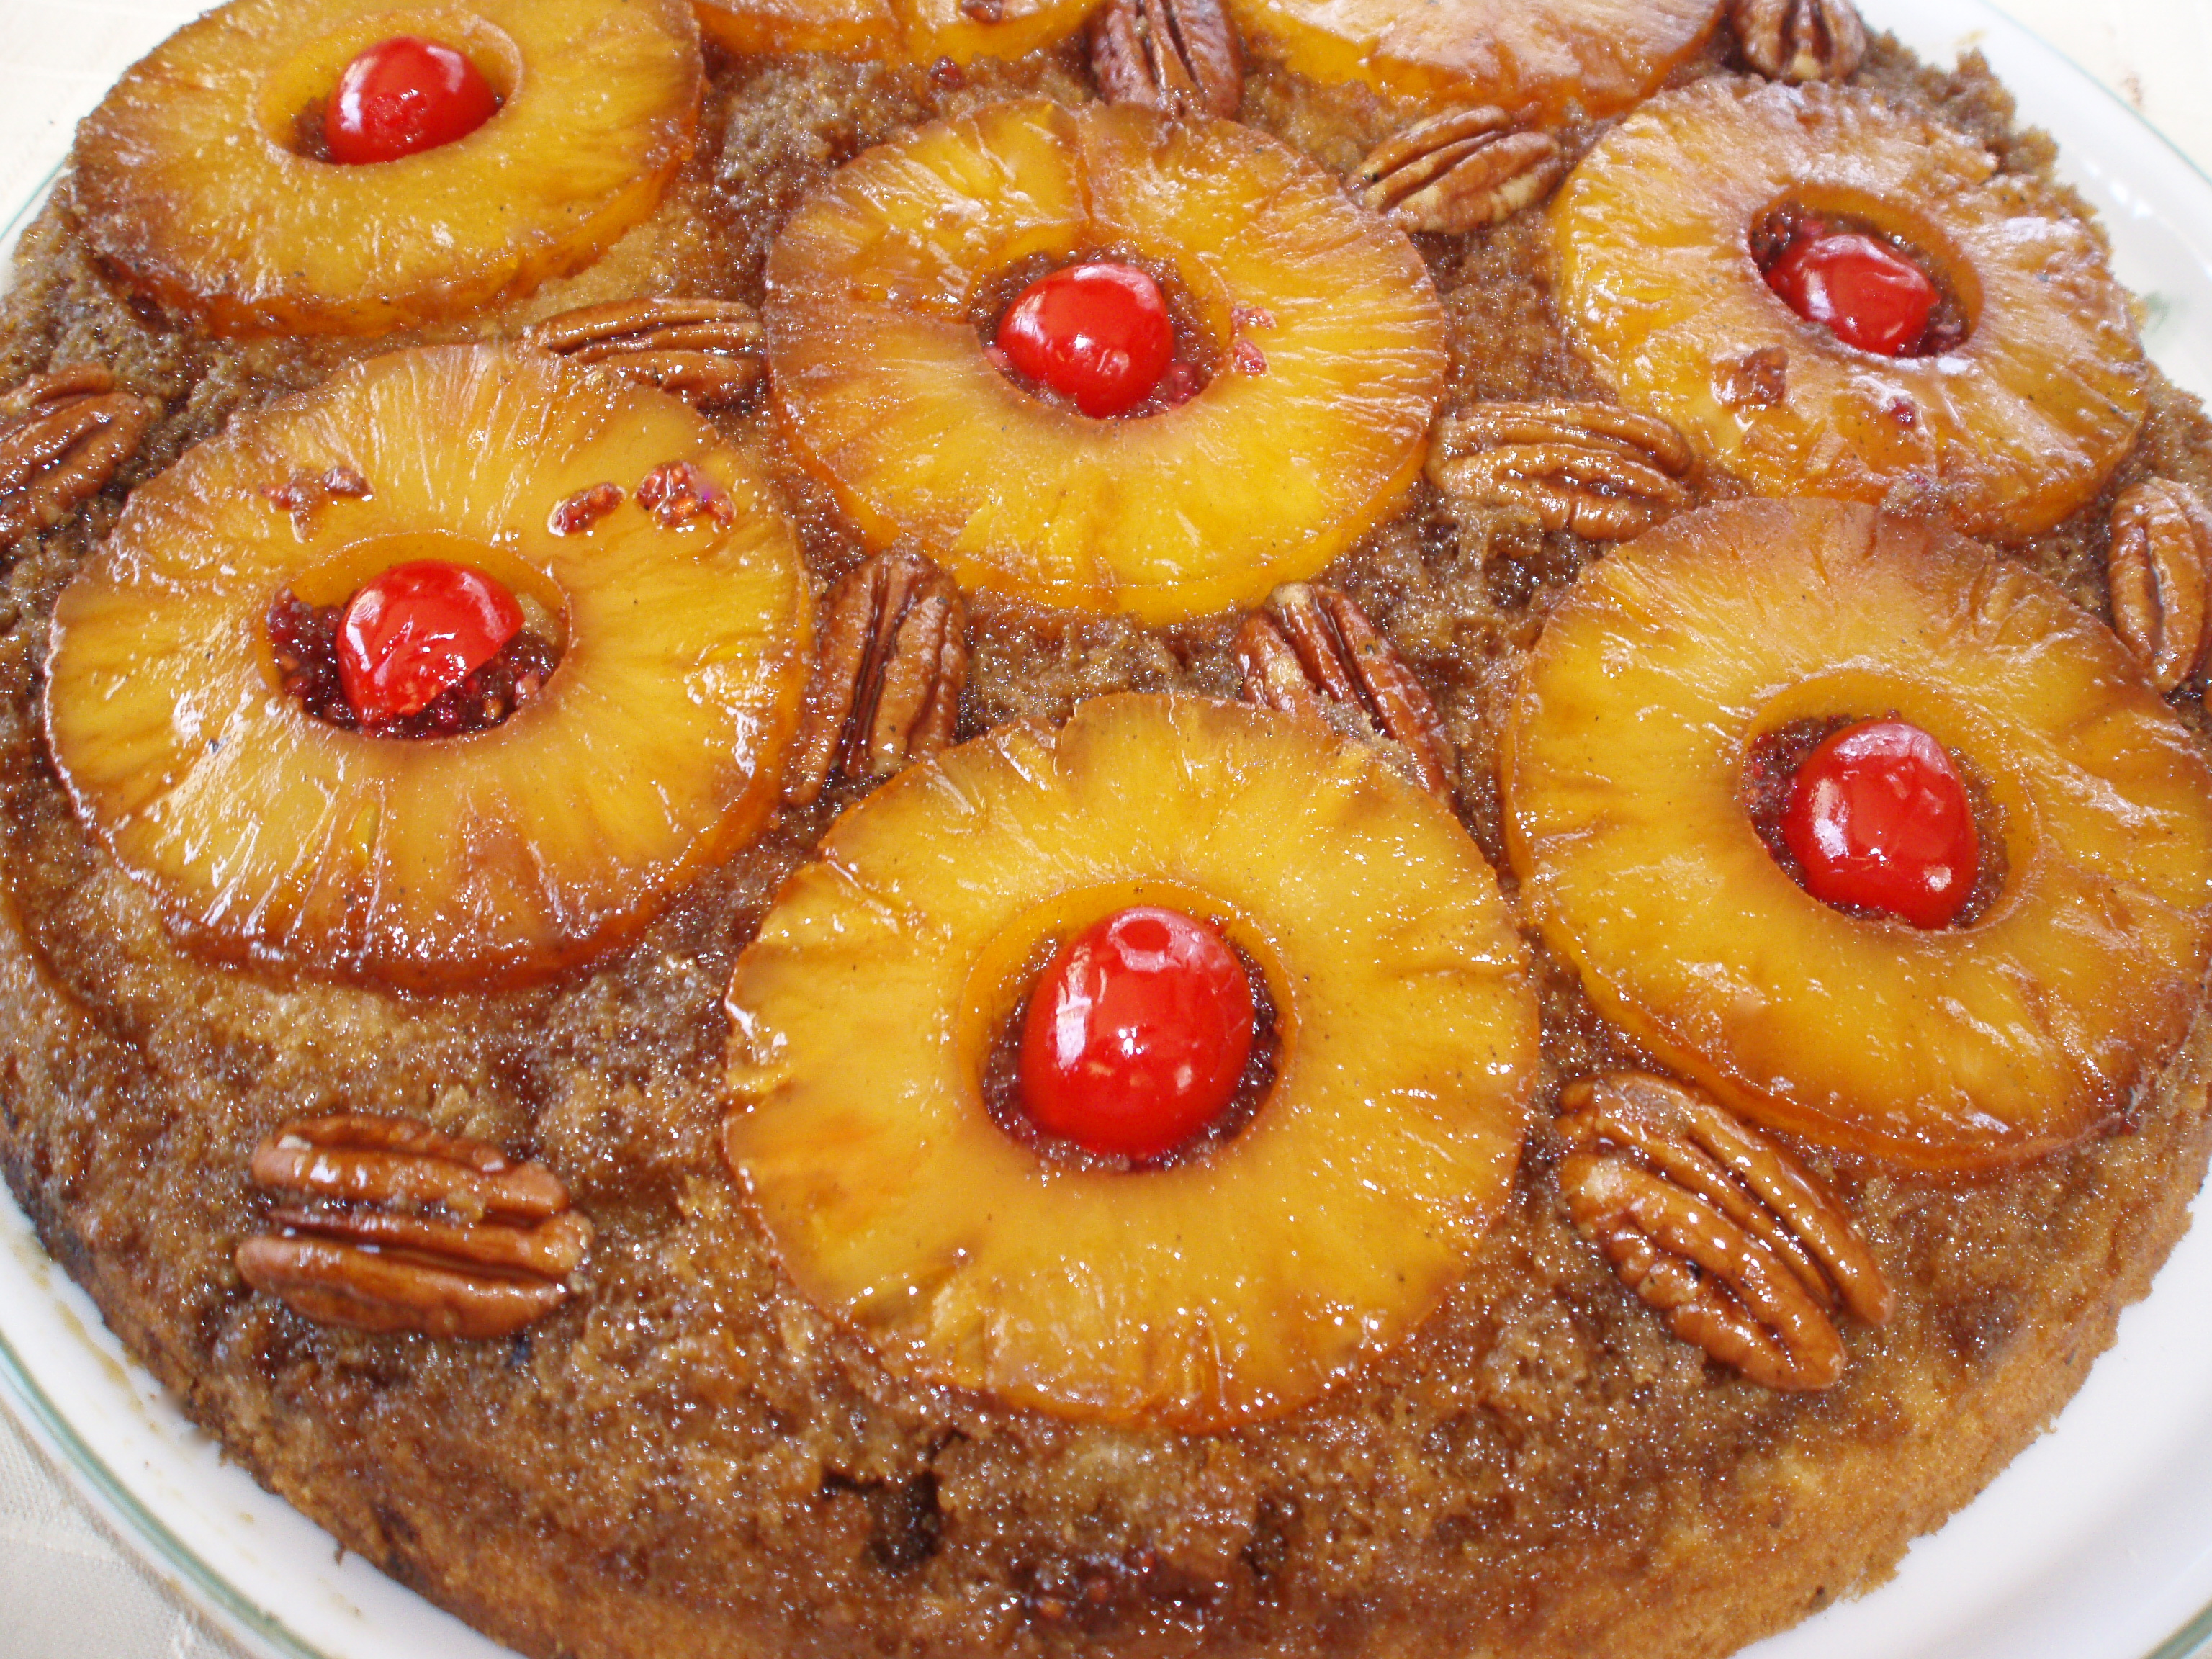 upside down cake pineapple upside down cake pineapple upside down cake ...